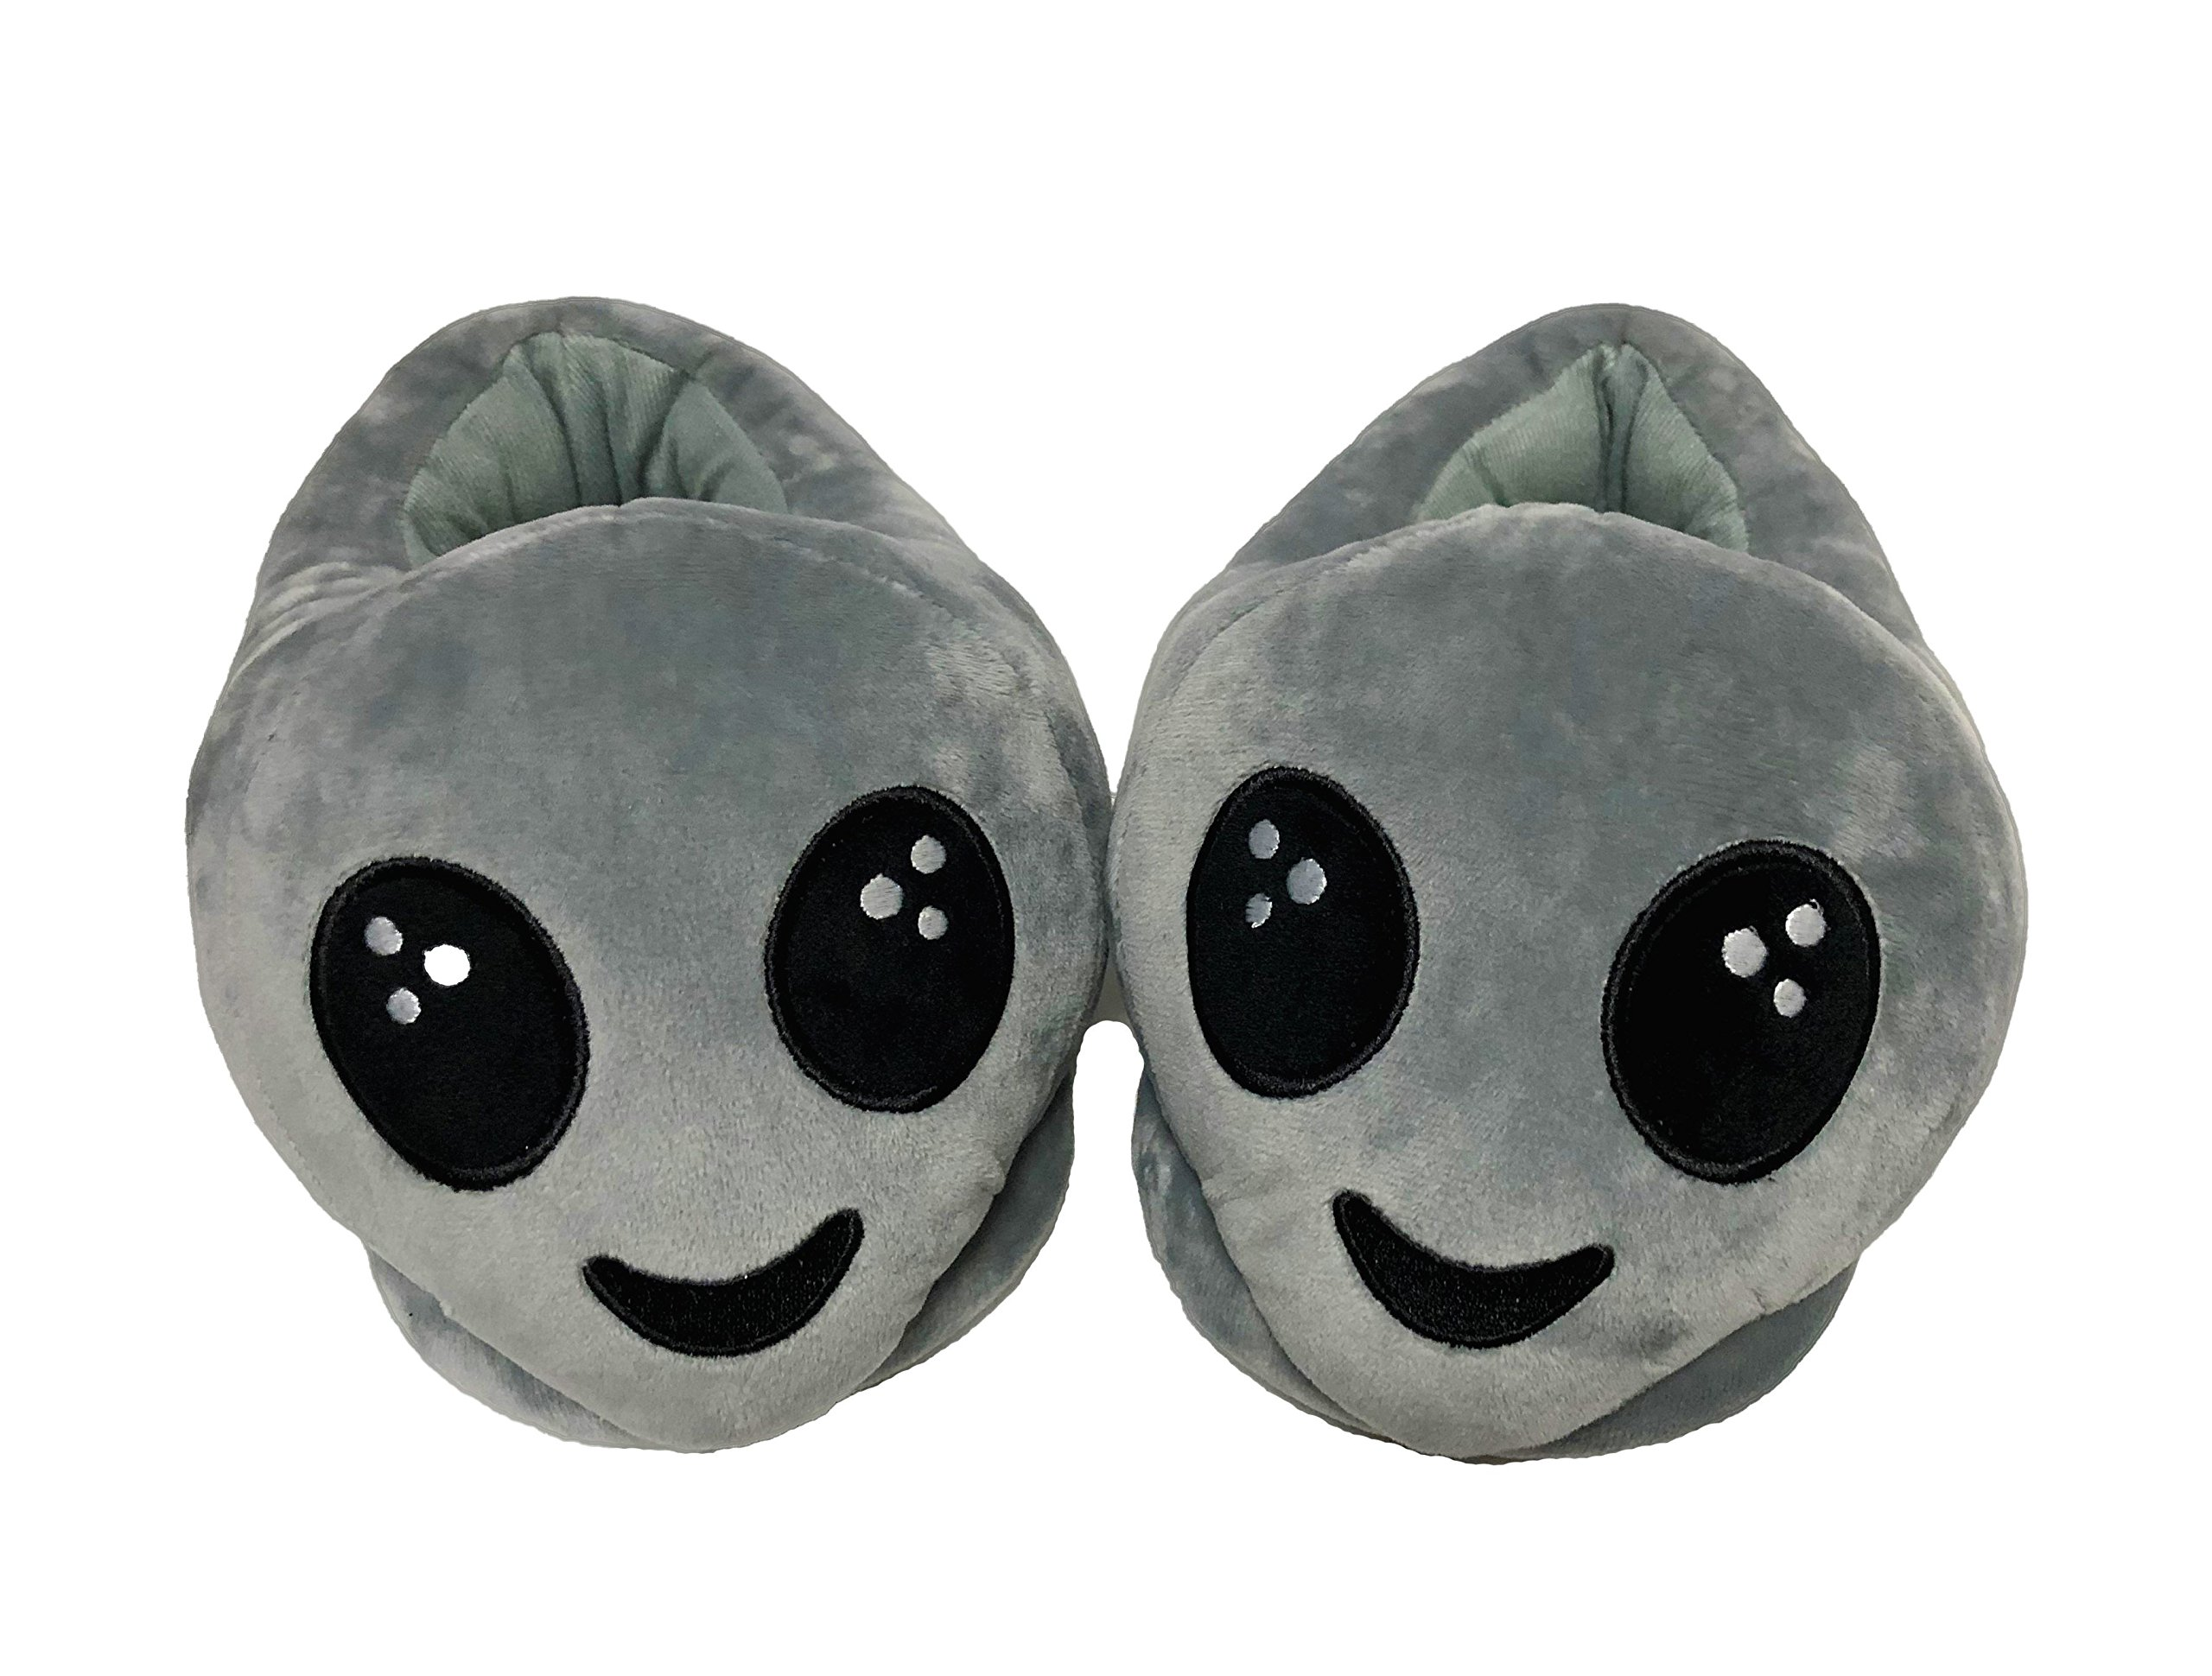 PLUSHERS Original Premium Quality Alien Emoji Slippers for Men and Women, 2 Sizes, Fits Mens Sizes 8-11.5 and Womens Sizes 5.5-7.5 (Womens)